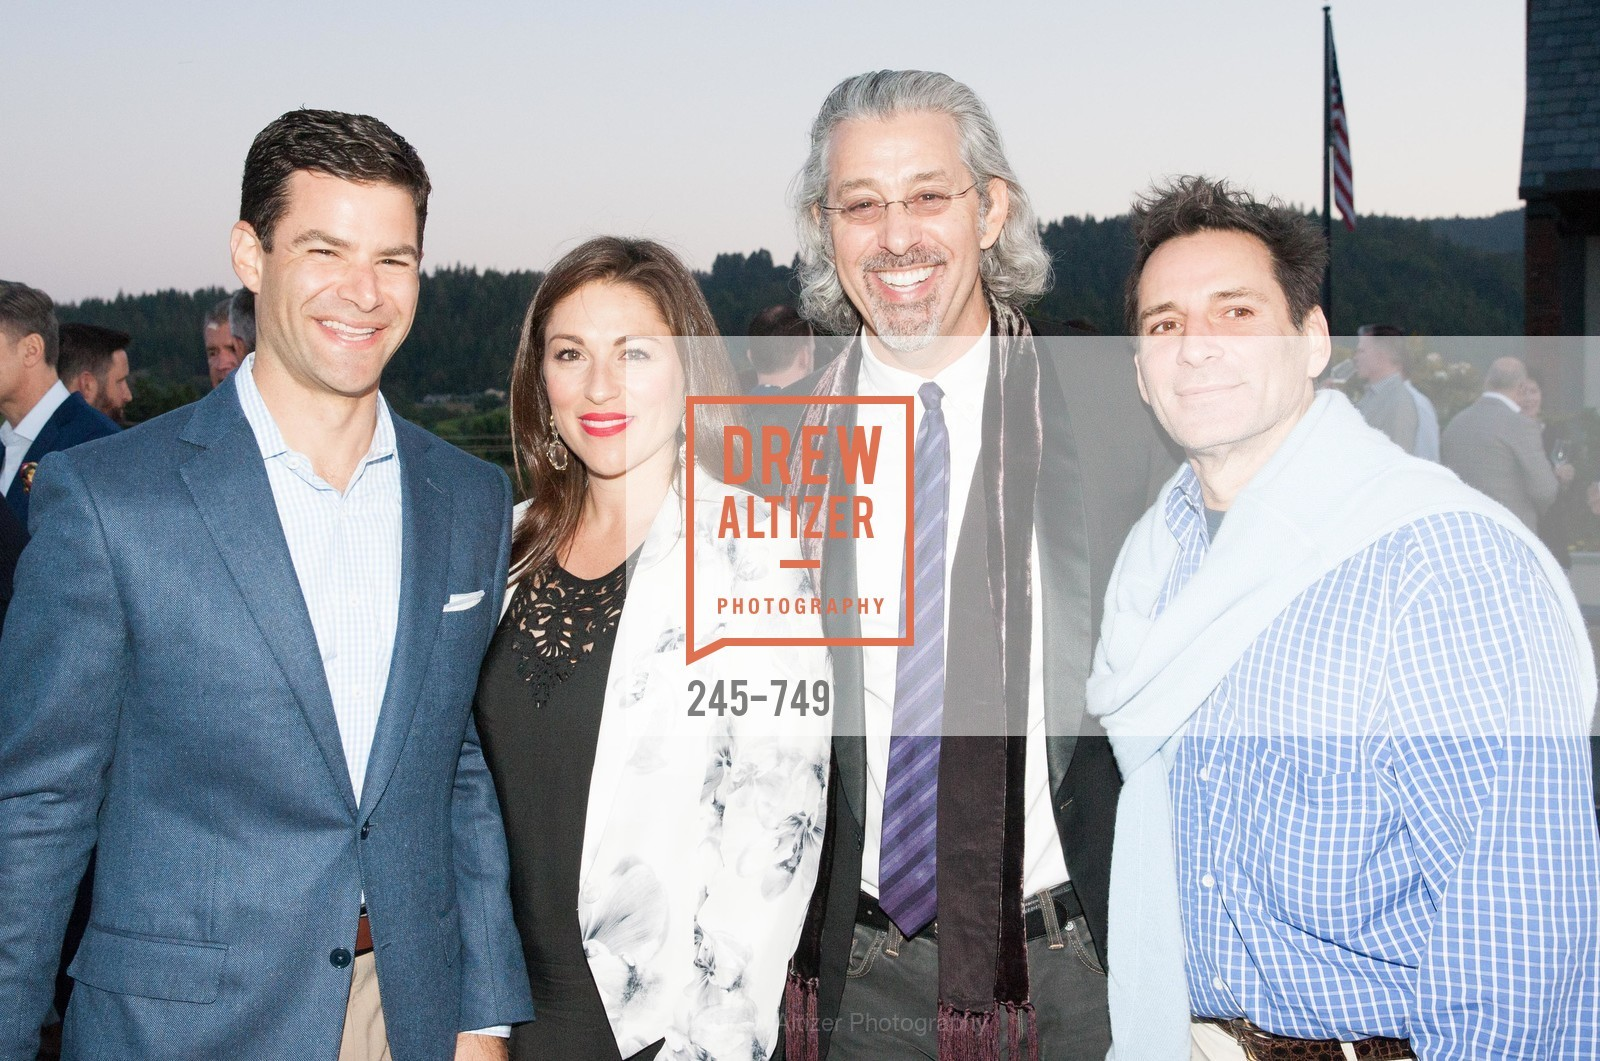 Ed Segal, Maya Segal, Jeffrey Rosen, Seth Mattarasso, PETER COPPING Meets and Greets OSCAR DELA RENTA Clients and Associates at NEIMAN MARCUS, US, May 23rd, 2015,Drew Altizer, Drew Altizer Photography, full-service agency, private events, San Francisco photographer, photographer california